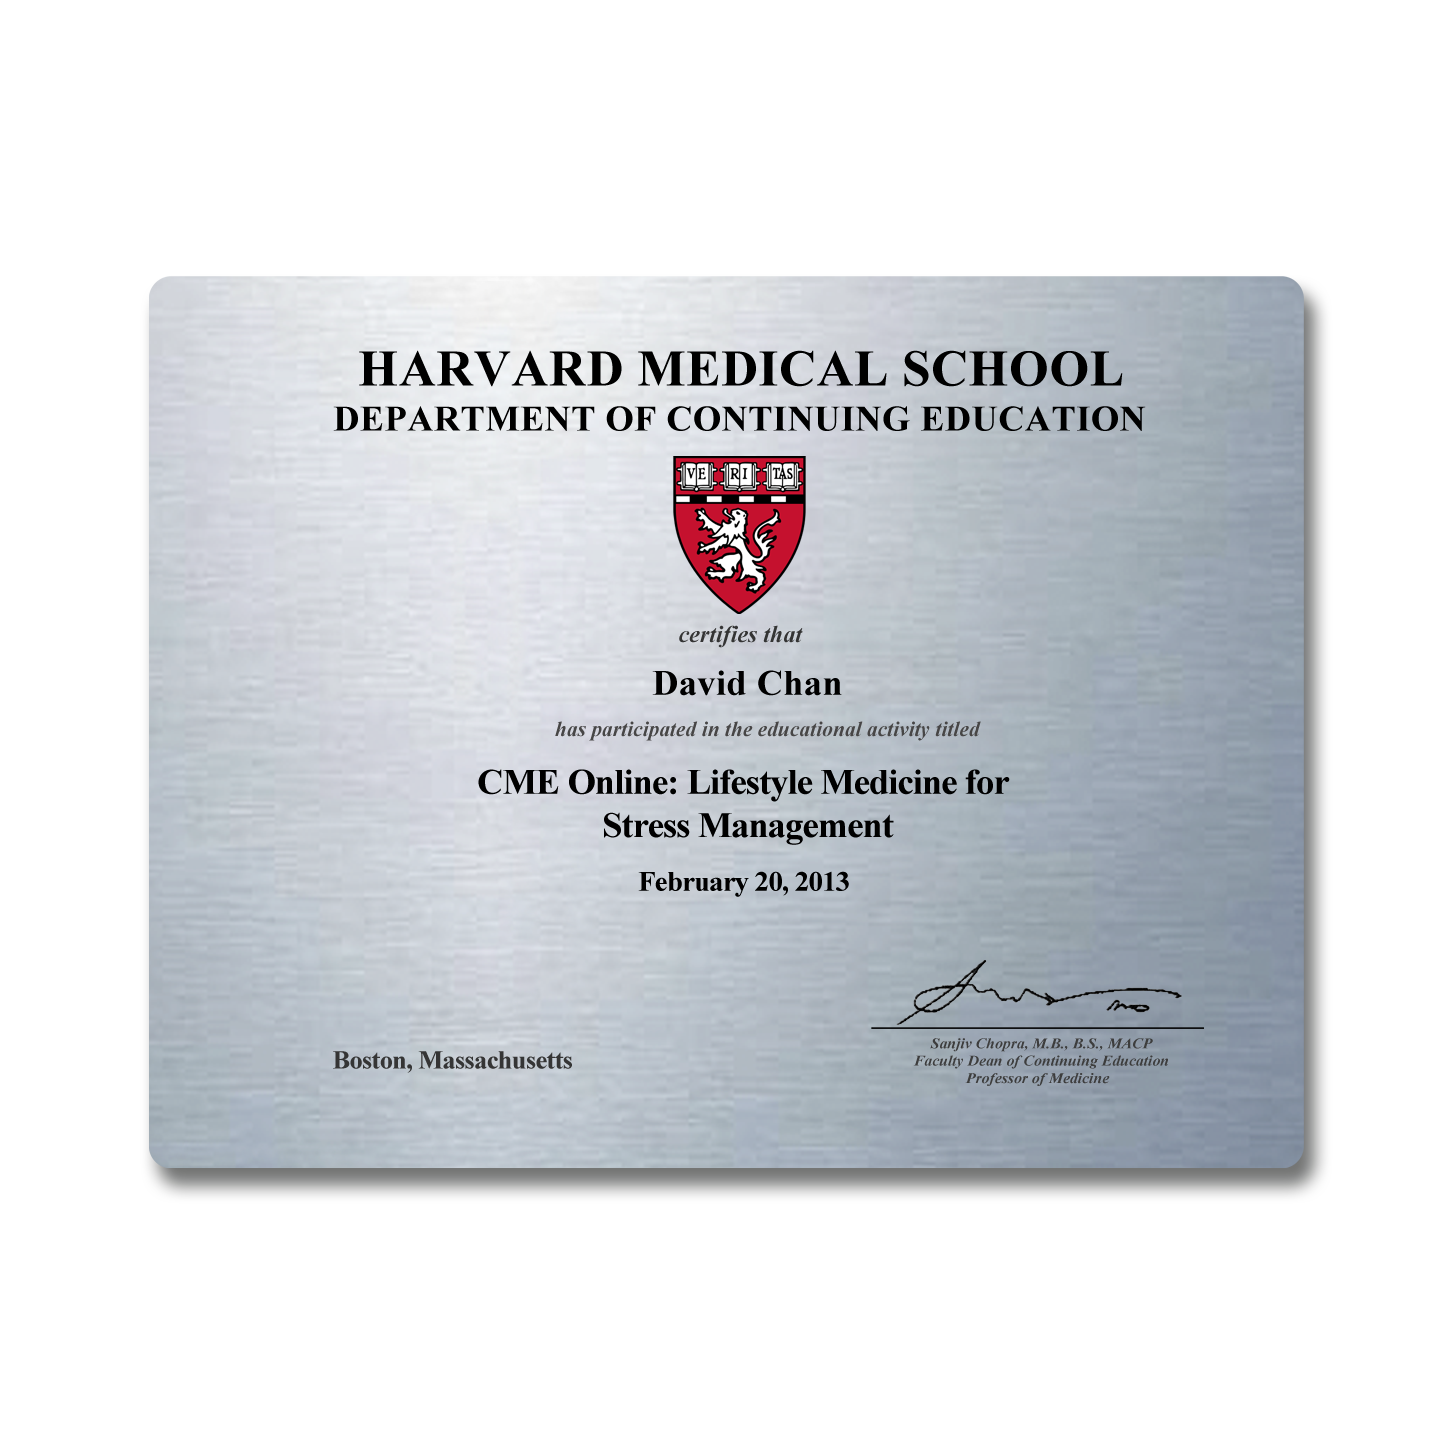 Harvard business card template 28 images harvard alumni business harvard business card template by business cards harvard school image collections reheart Image collections